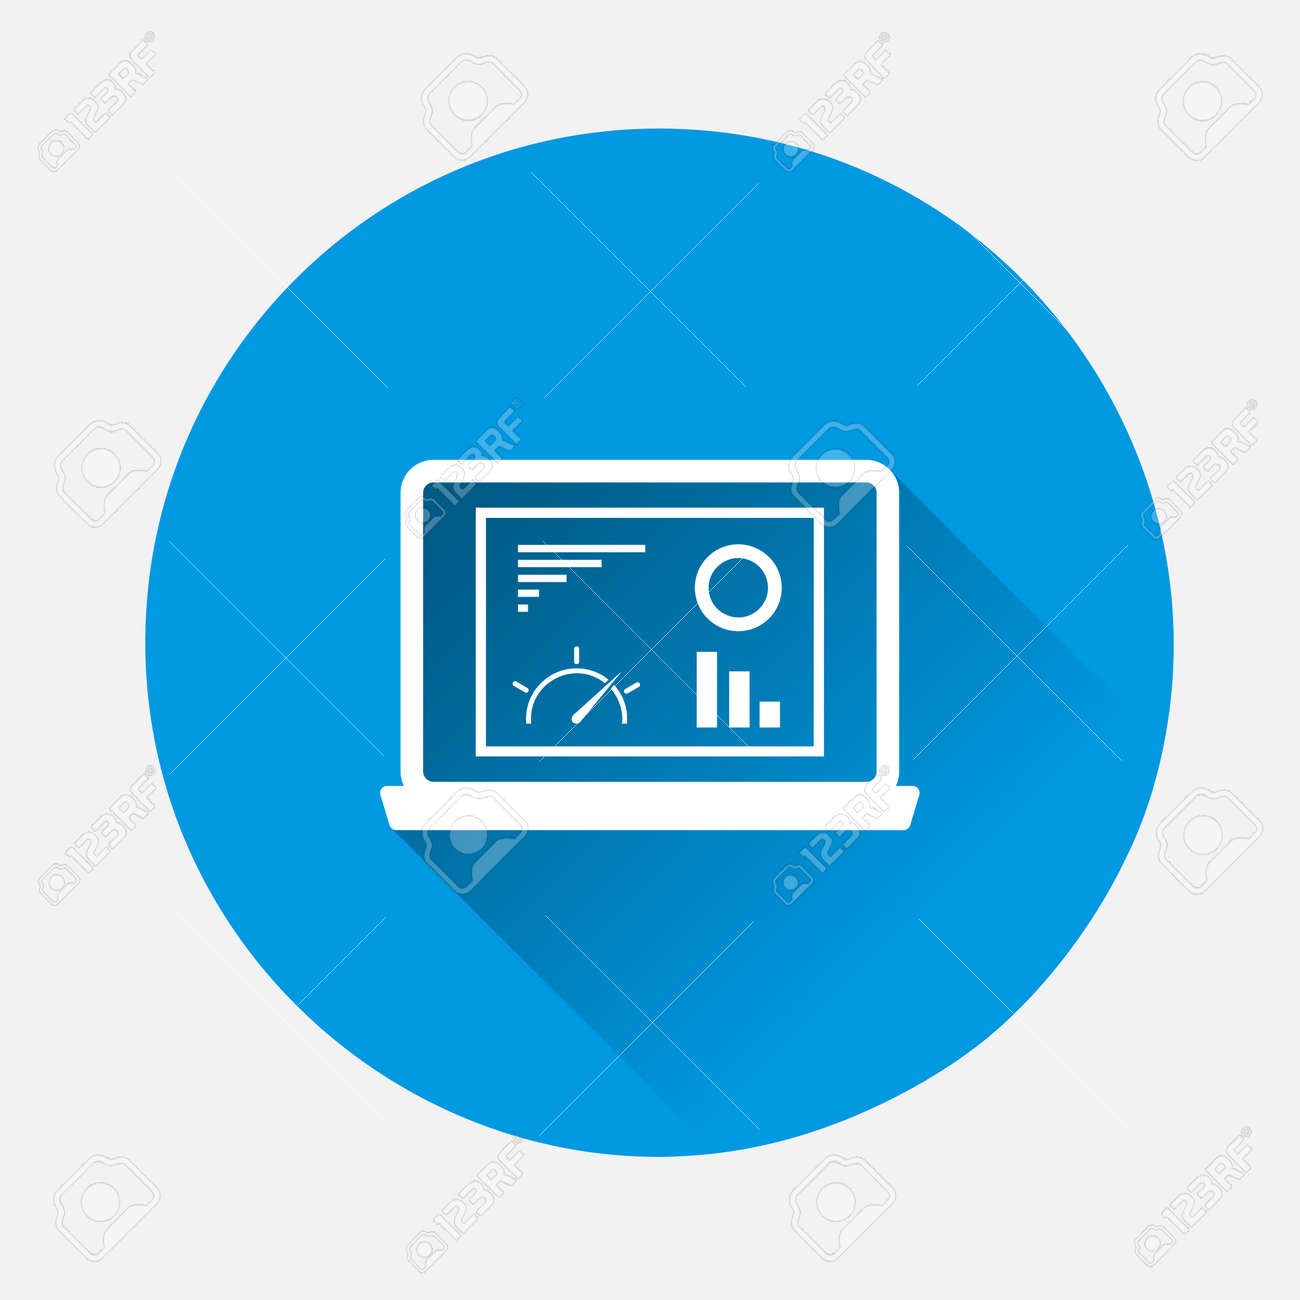 Vector pointer direction icon on blue background. Flat image with long shadow.Layers grouped for easy editing illustration. - 168890765